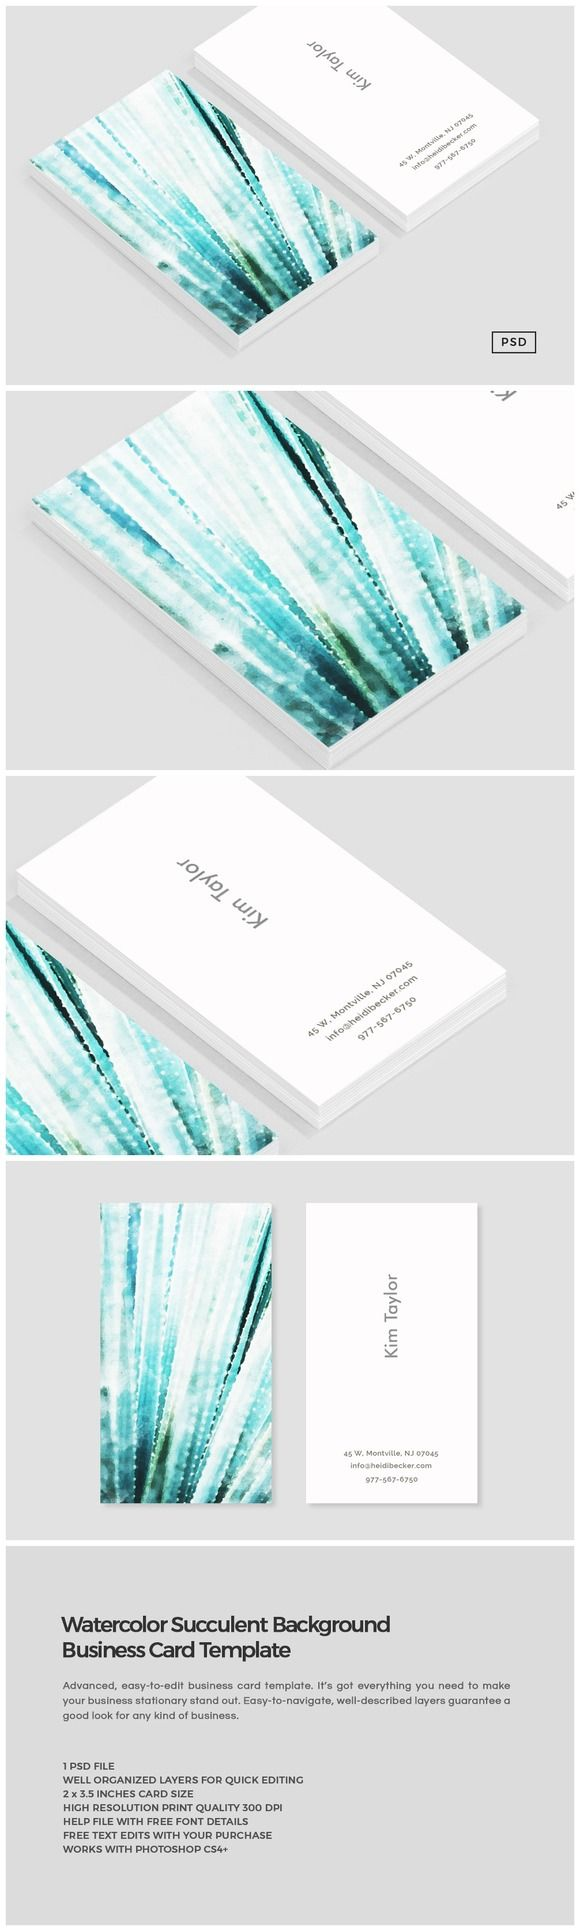 Watercolor Succulent Business Card by Design Co. on Creative Market Business Card Free Design http://www.plasticcardonline.com